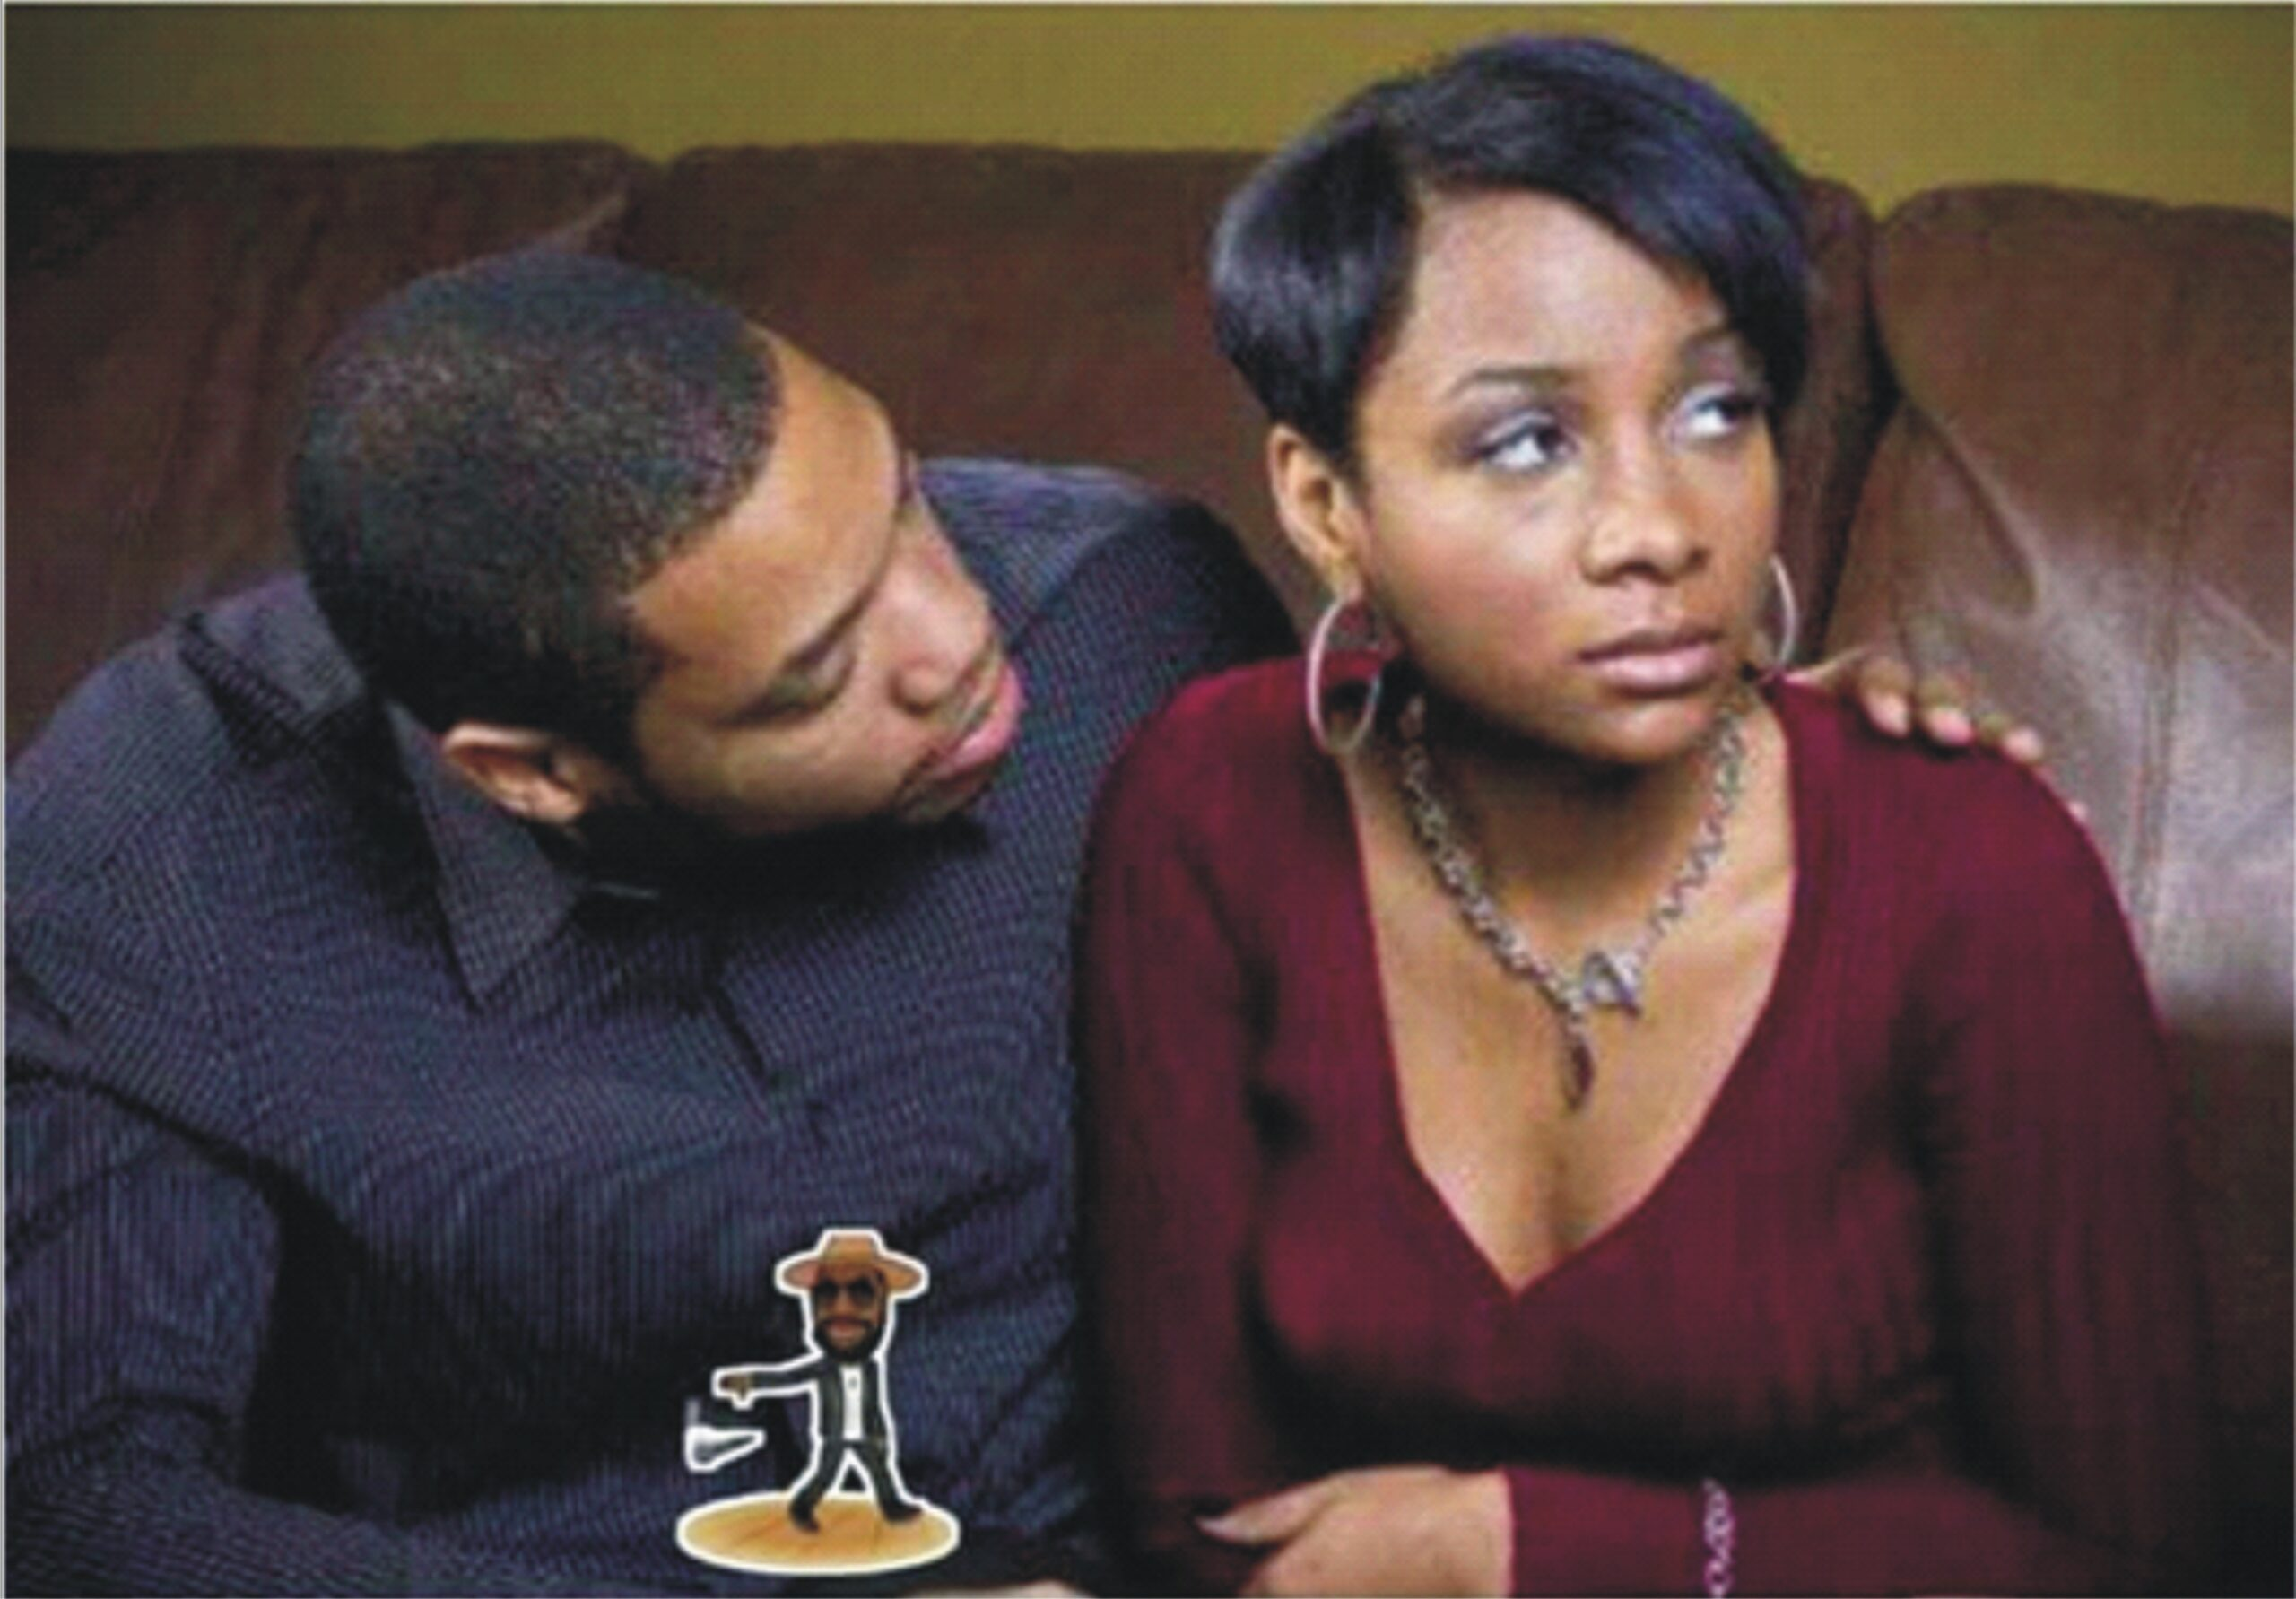 Are you dating married man?